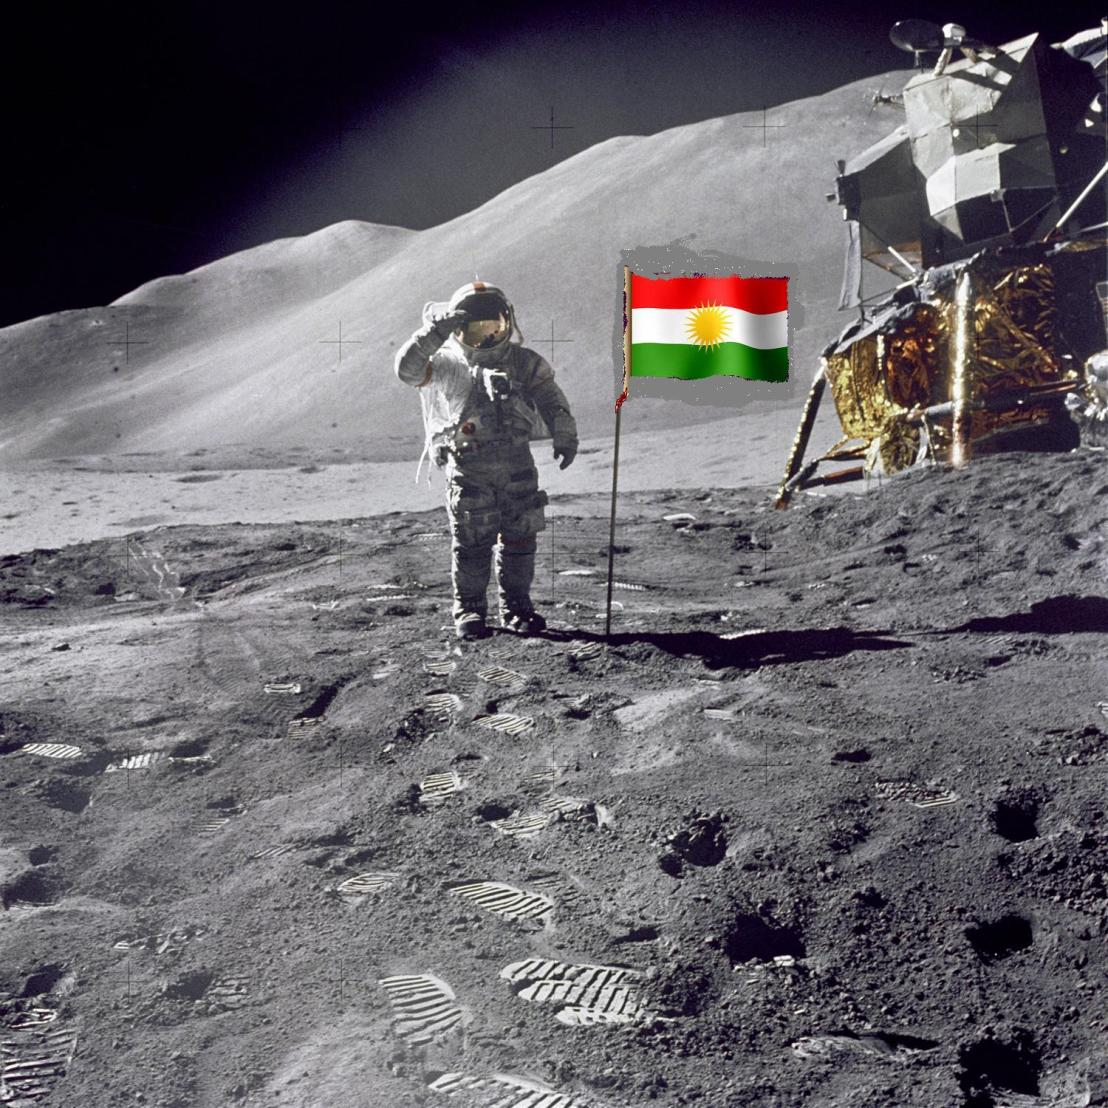 Mehmude Ehmede Qazze salutes Kurdish flag in Sea of Tranquility